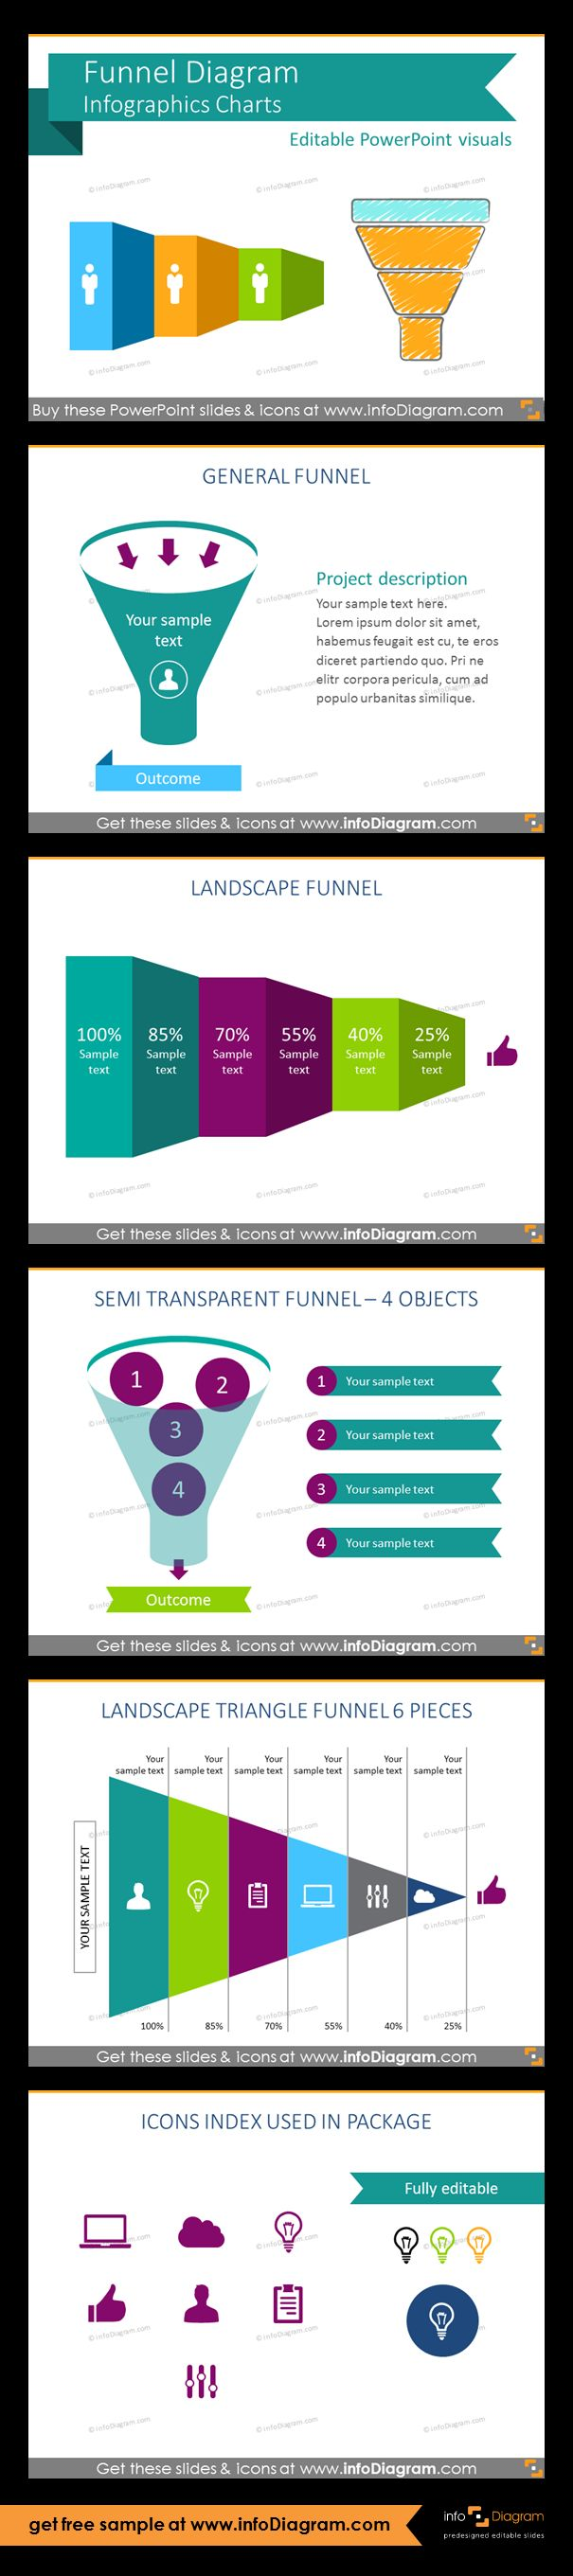 Predesigned Infographics shapes for showing various funnel processes on a slide. Suitable especially for marketing, sales and business development presentations. General project management funnel, landscape funnel, semi transparent funnel for 4 objects, landscape triangle horizontal sales funnel, set of flat icon symbols for infographics: cloud, computer, bulb, thumbs up, man, document.